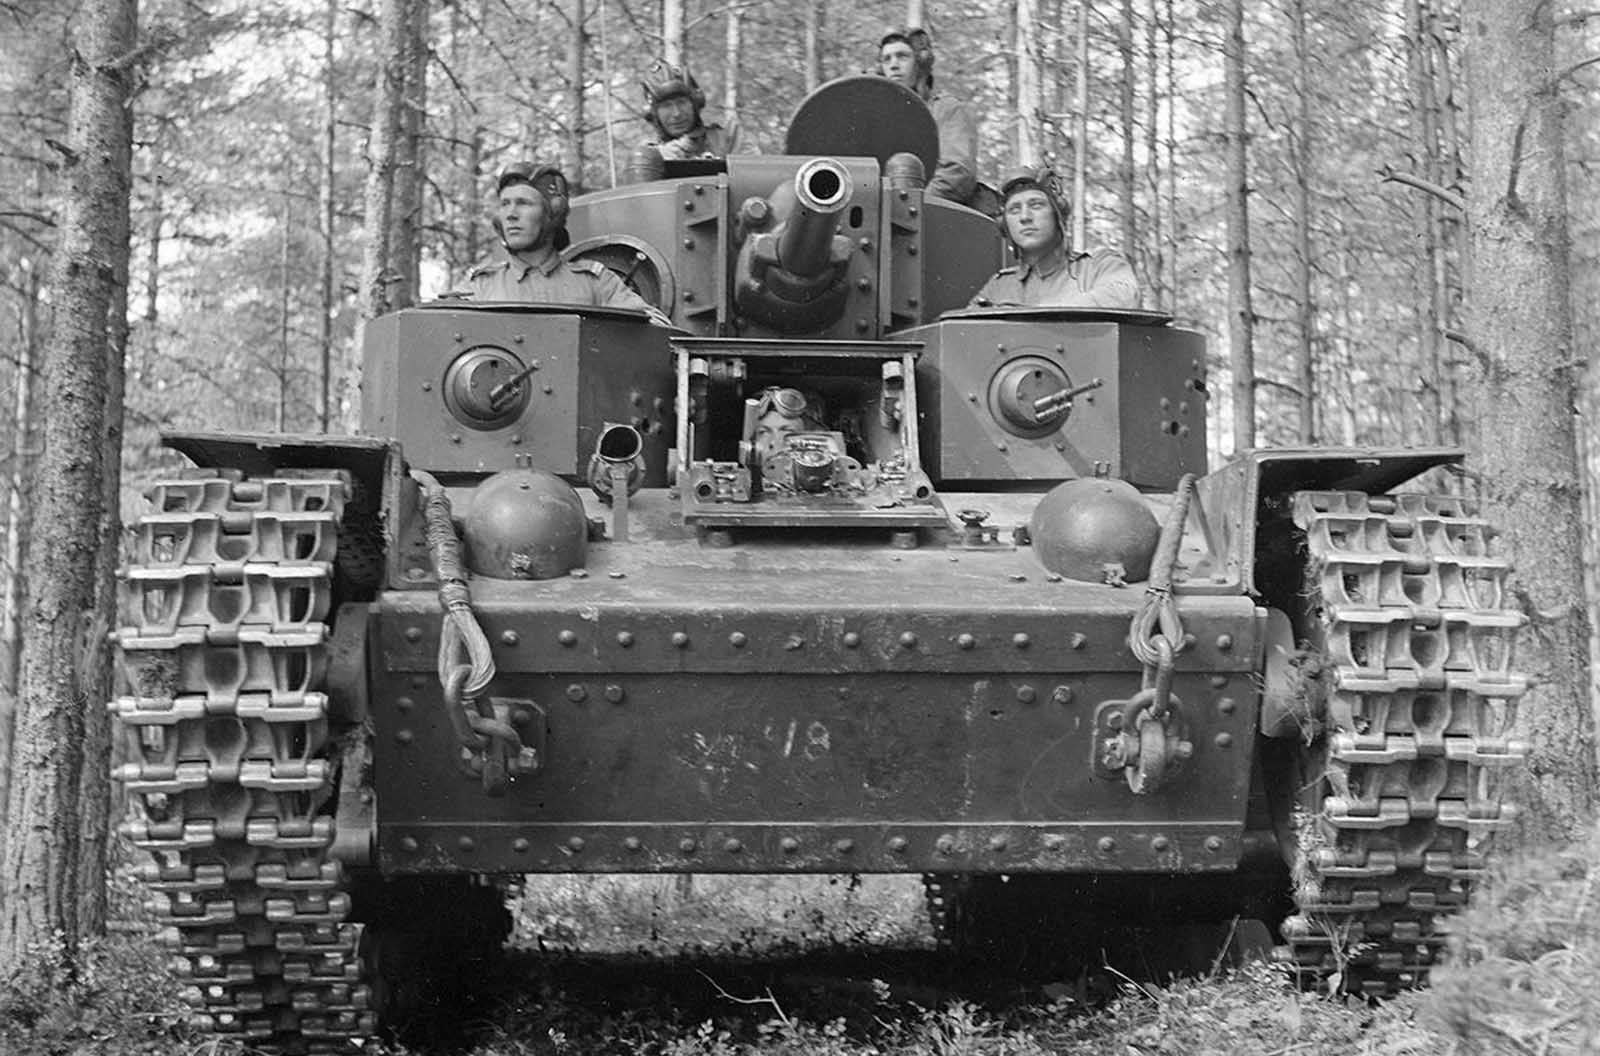 Finnish tank crew, July 8, 1941.